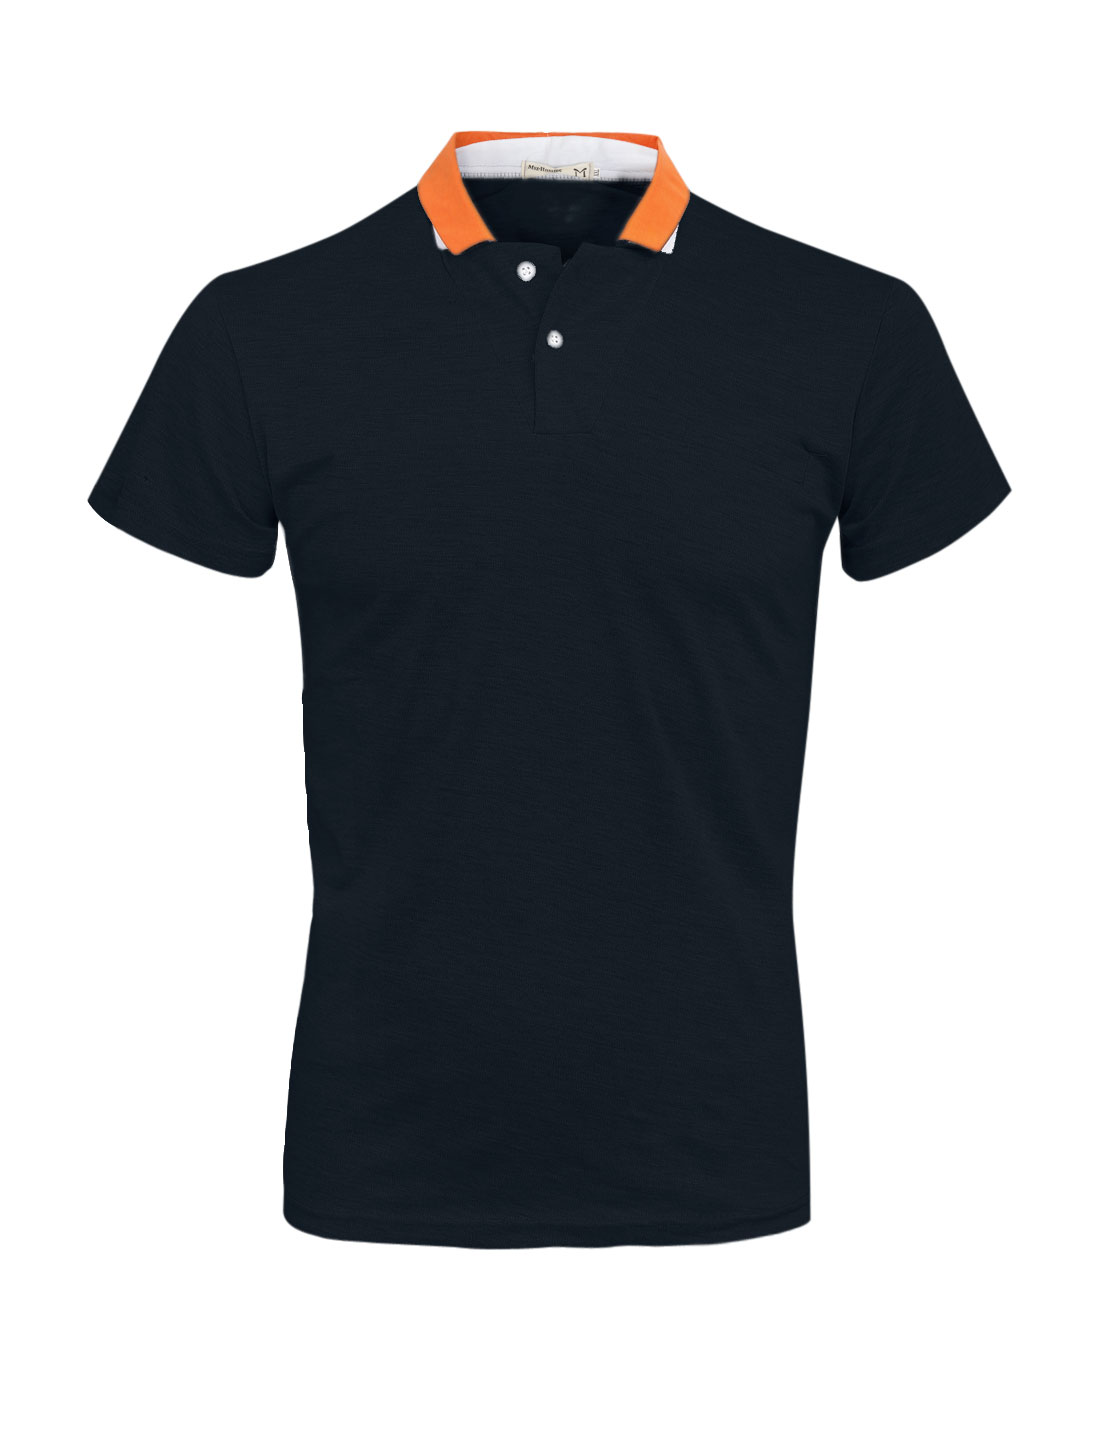 Men Mock Chest Pocket Slipover Short Sleeve Polo Shirt Navy Blue M